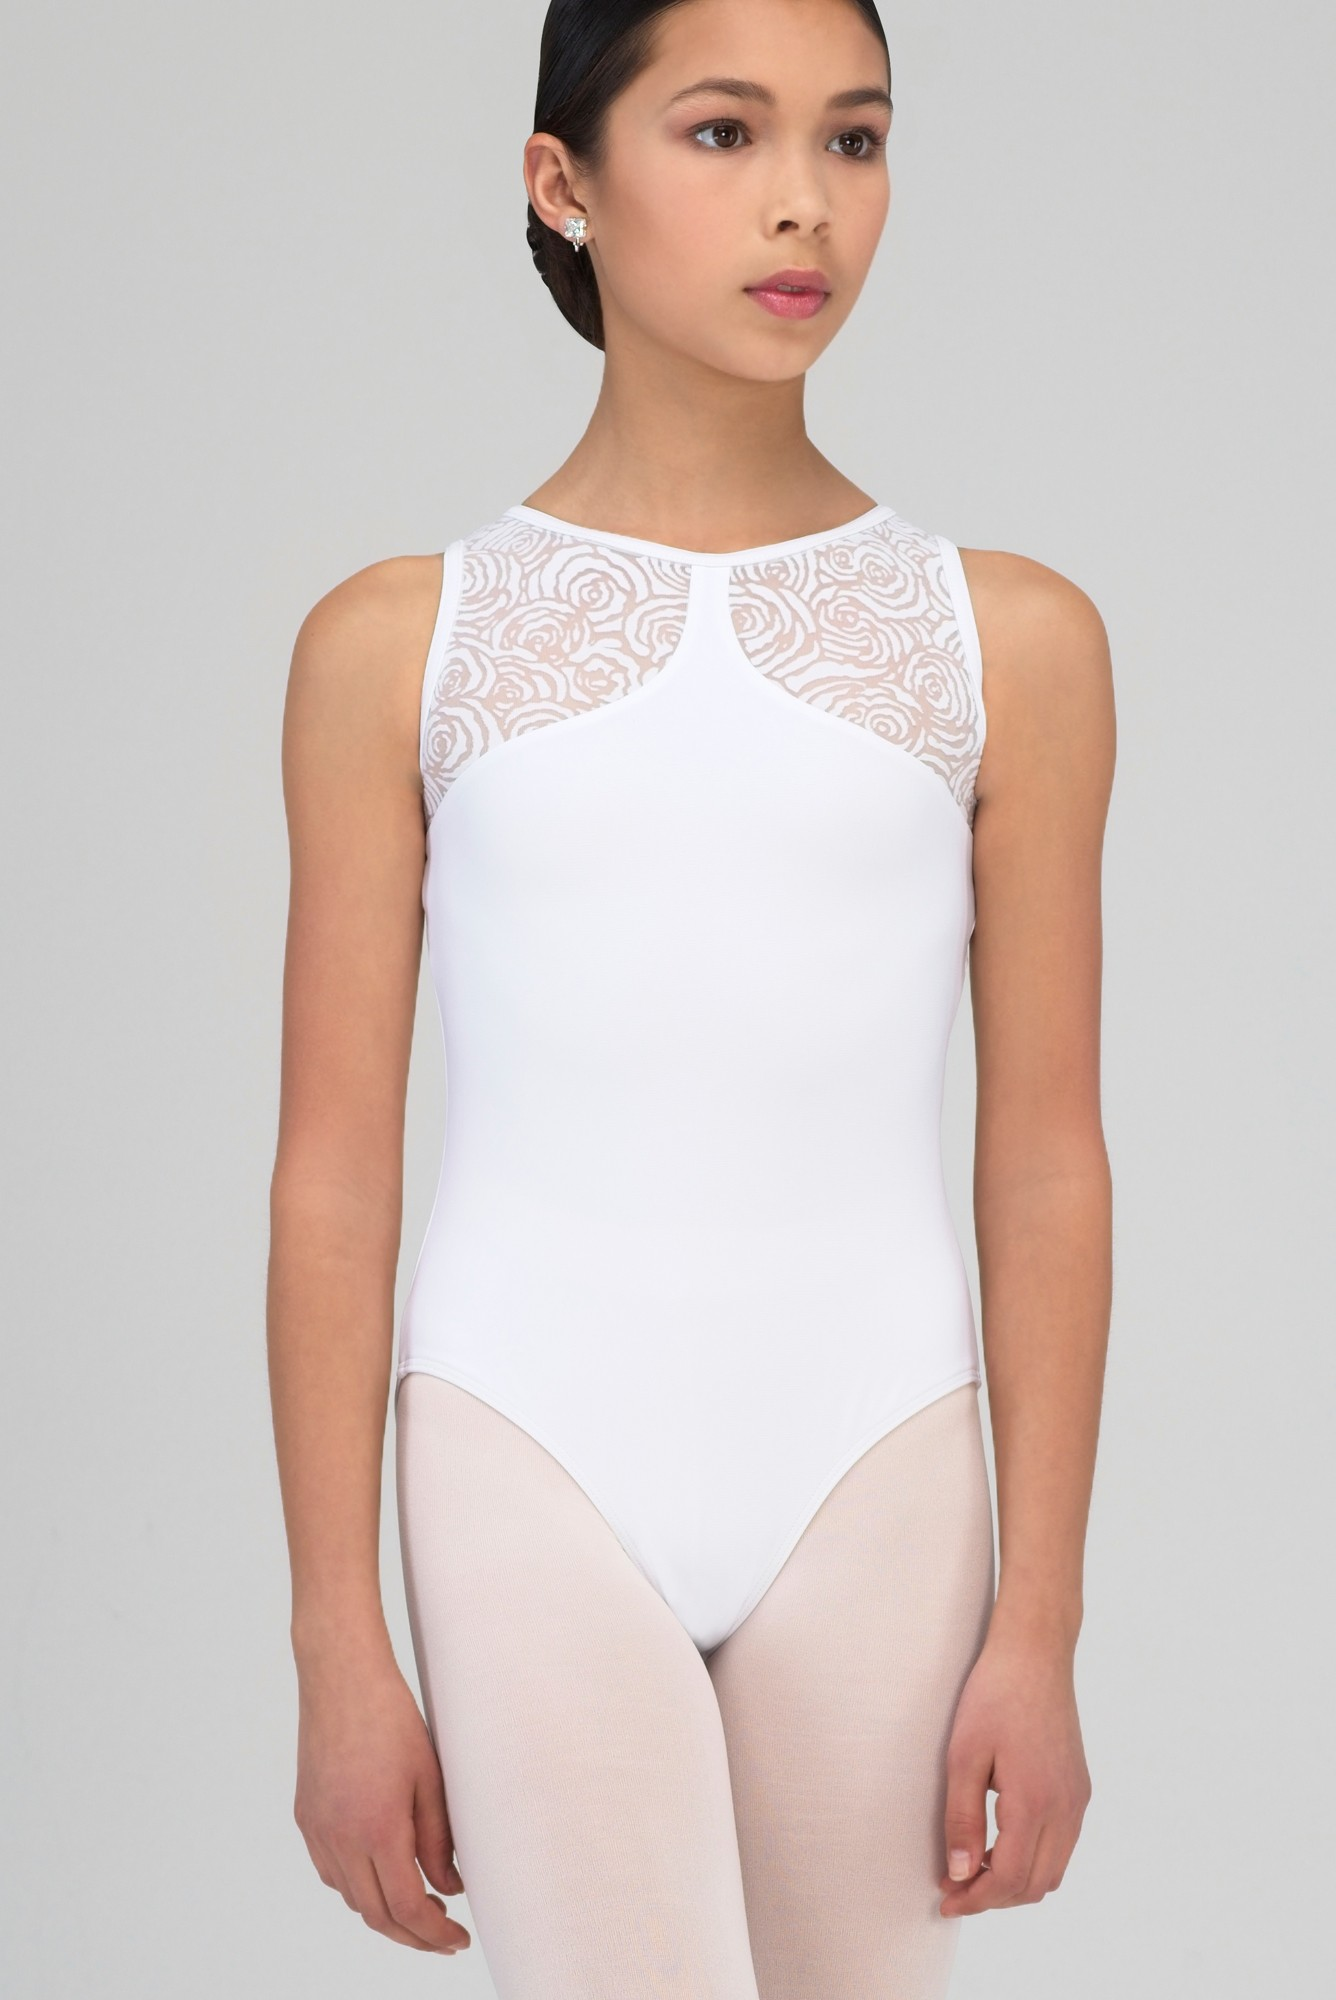 Noelie Child  Open Back Leotard